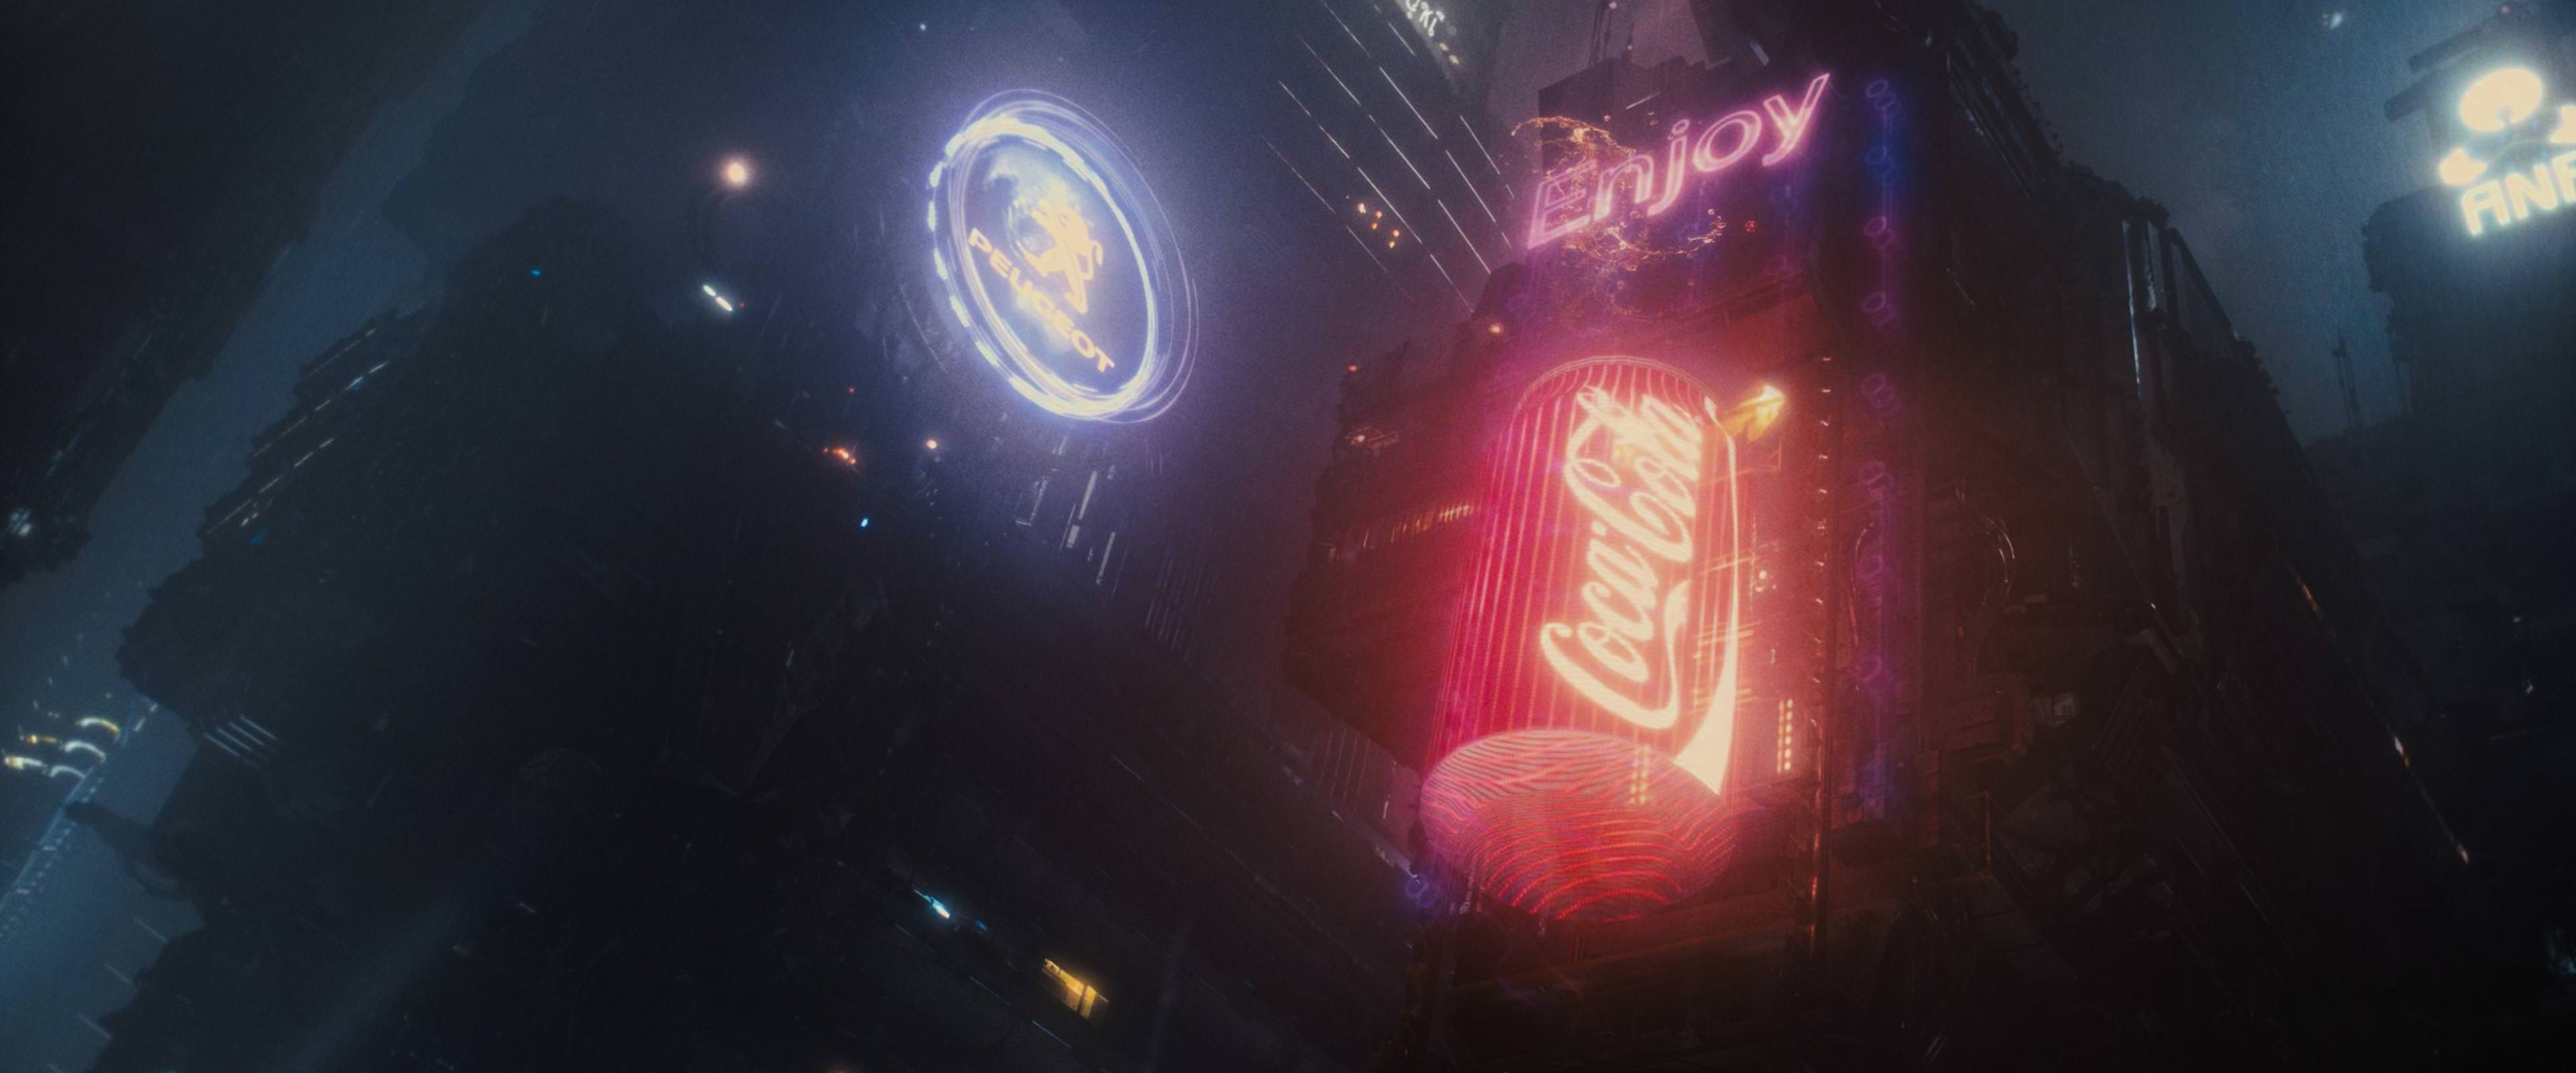 Free Download Blade Runner 2049 4k Wallpapers As Requested Album